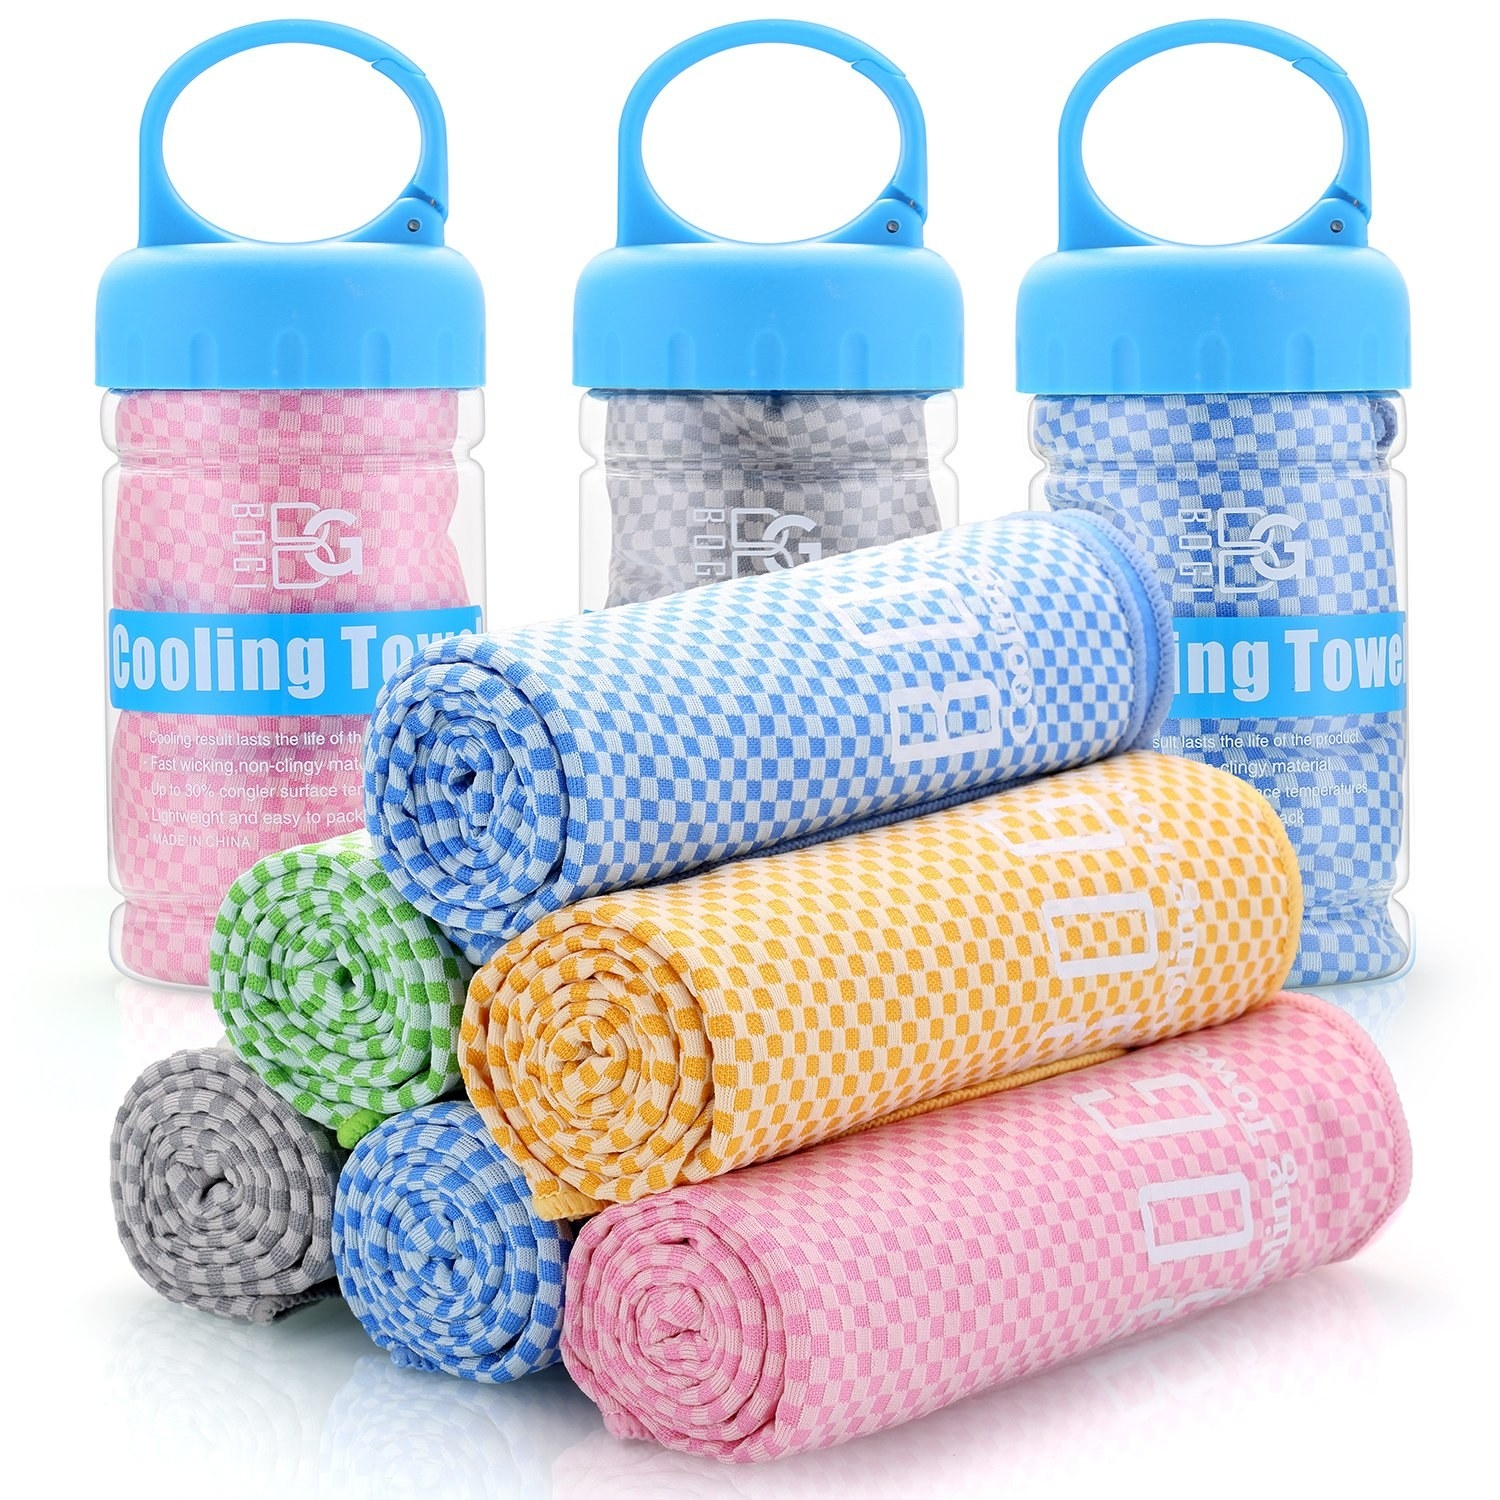 Rolled towels are stacked in a pyramid form with three containers that have towels in them in the background